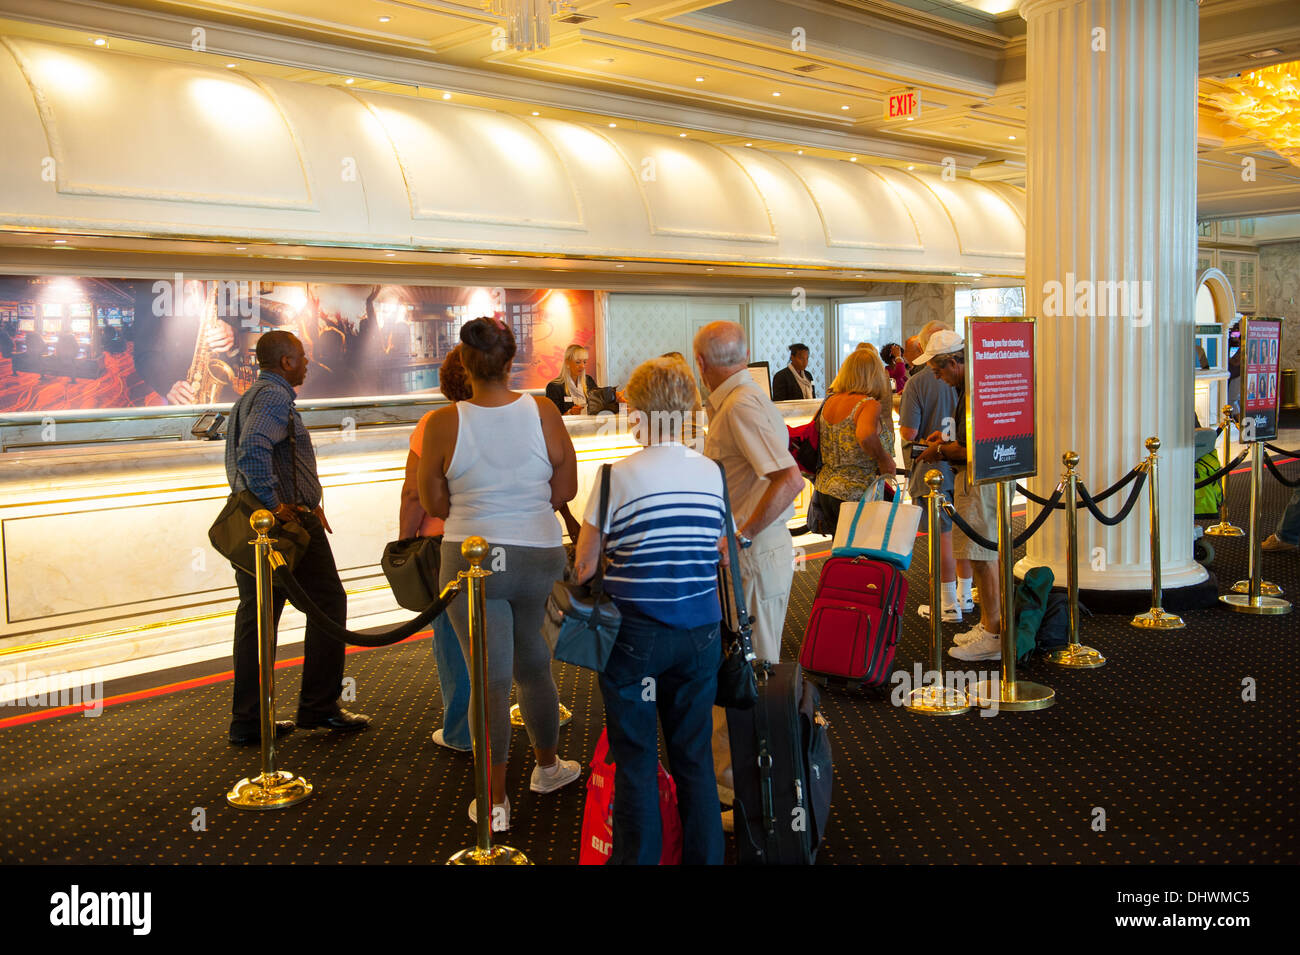 USA America New Jersey NJ N.J. Atlantic City line to check in at the Atlantic Club Casino Hotel tourists holiday checking - Stock Image